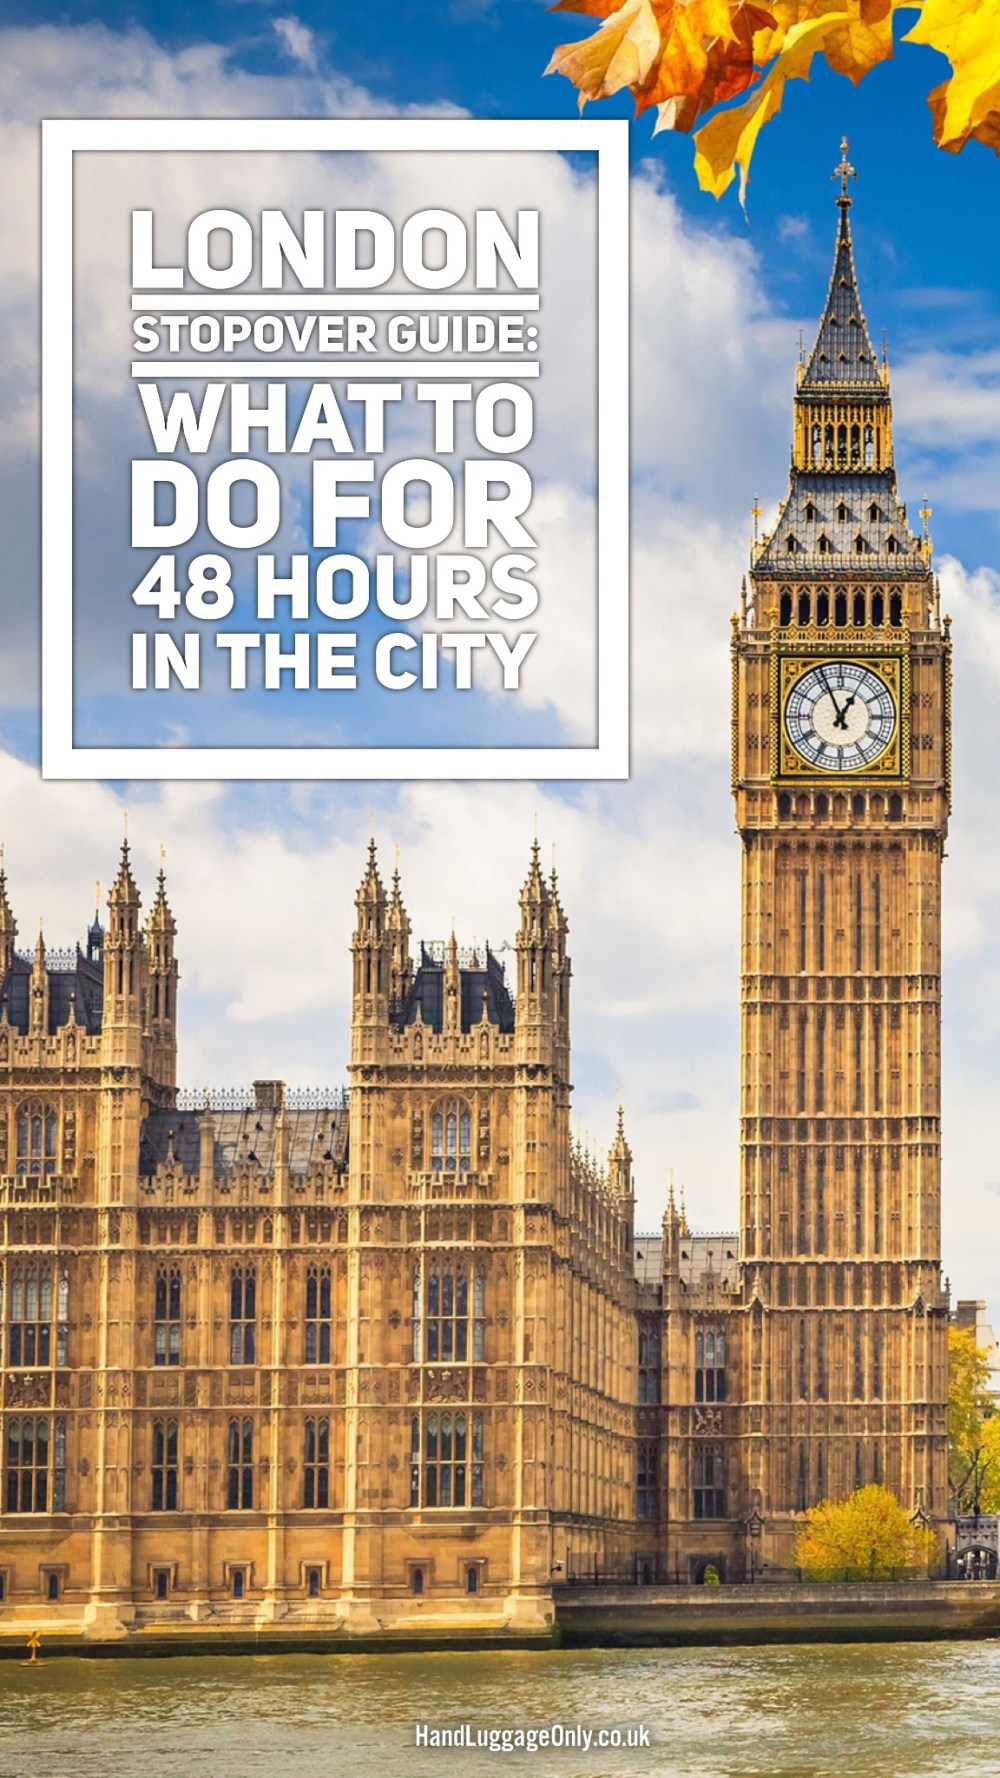 London Stopover Guide: What To Do For 48 Hours In The City